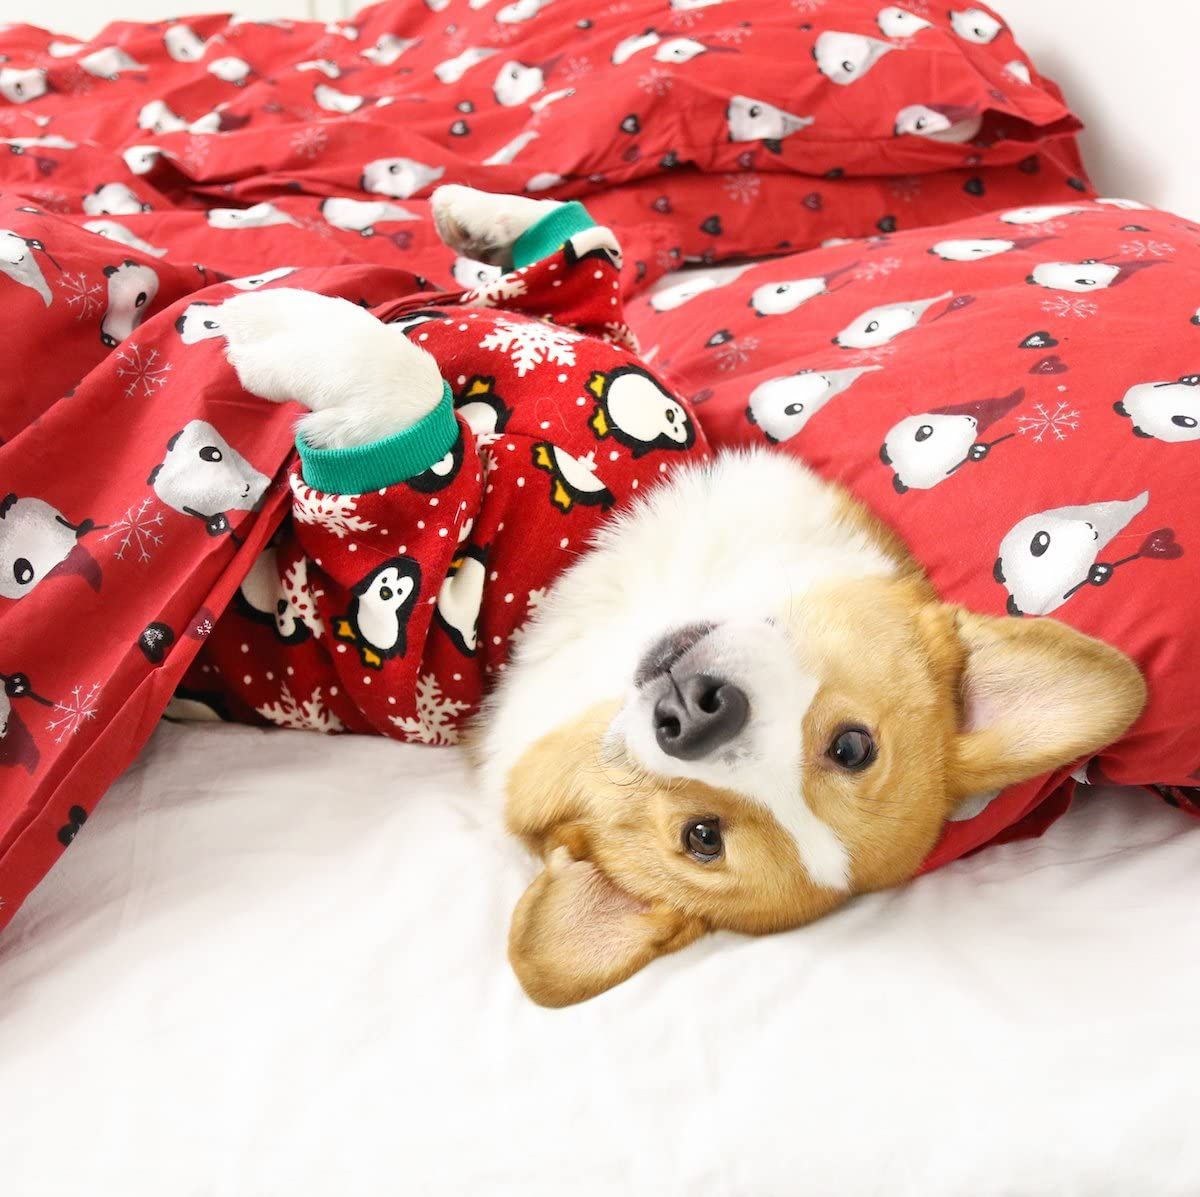 Toy Terrier Dog onesies Bichon Gift for pets. Pet Costume with animals Chihuahua Dog or Sphynx cat Pajamas Pajamas for York